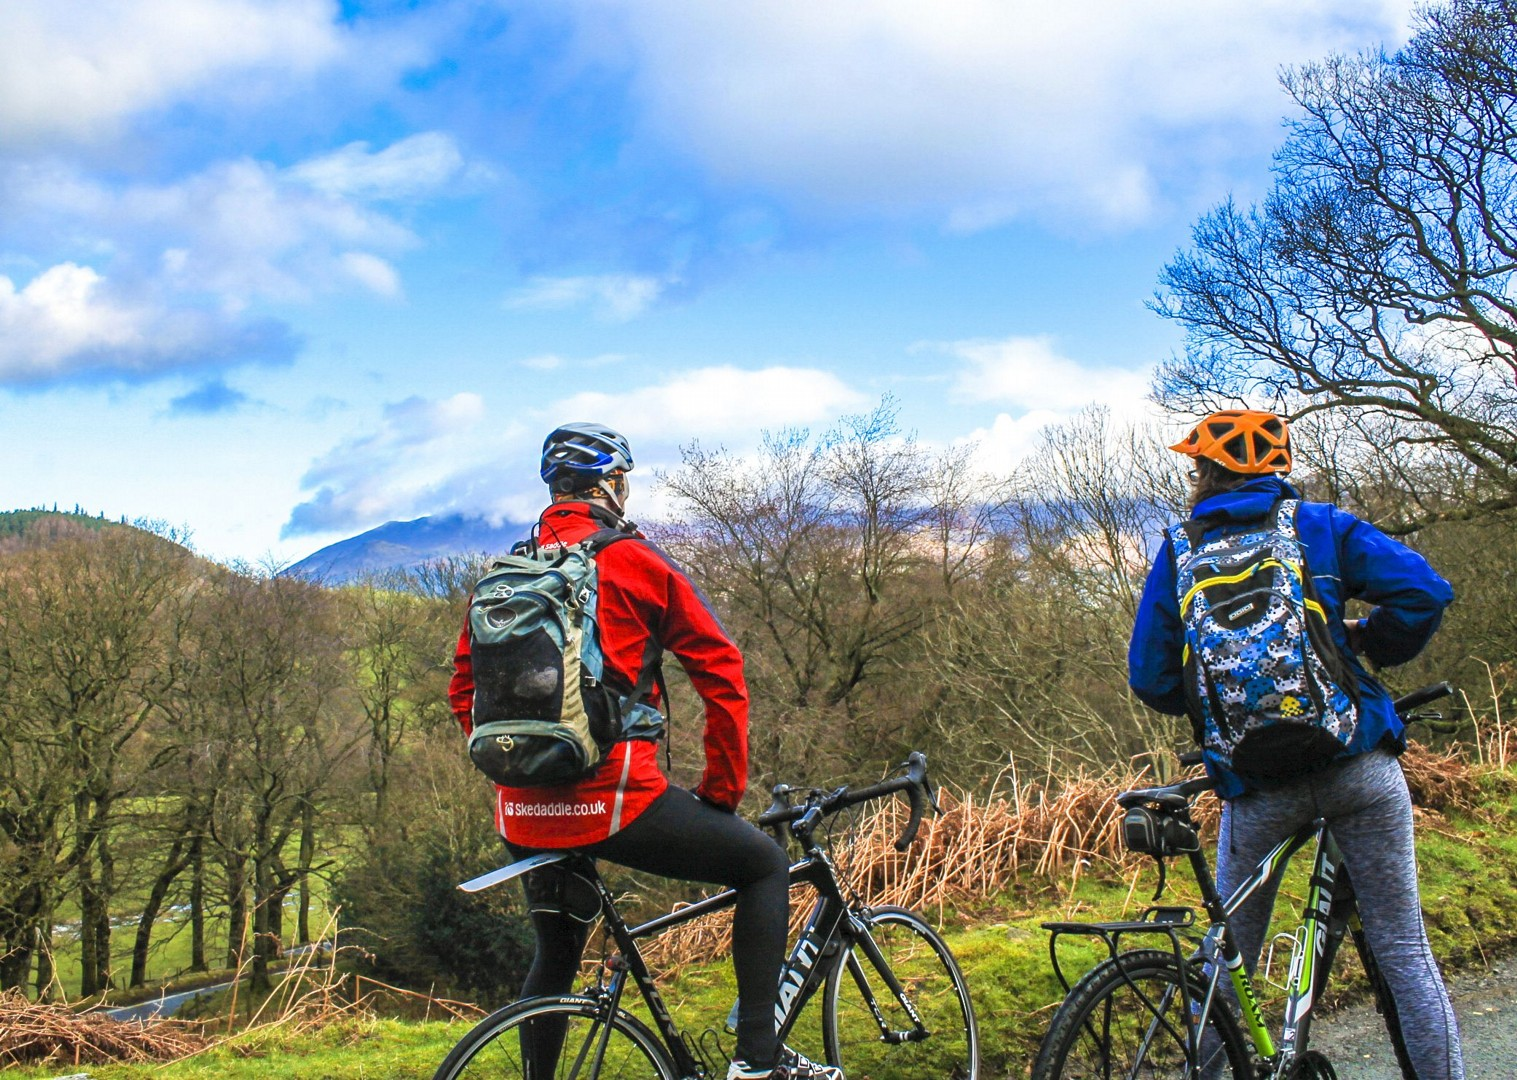 saddle-skedaddle-derwent-water-countryside-forest-lakes-mountains-bike.jpg - UK - Lake District - Derwent Water - Guided Leisure Cycling Holiday - Leisure Cycling